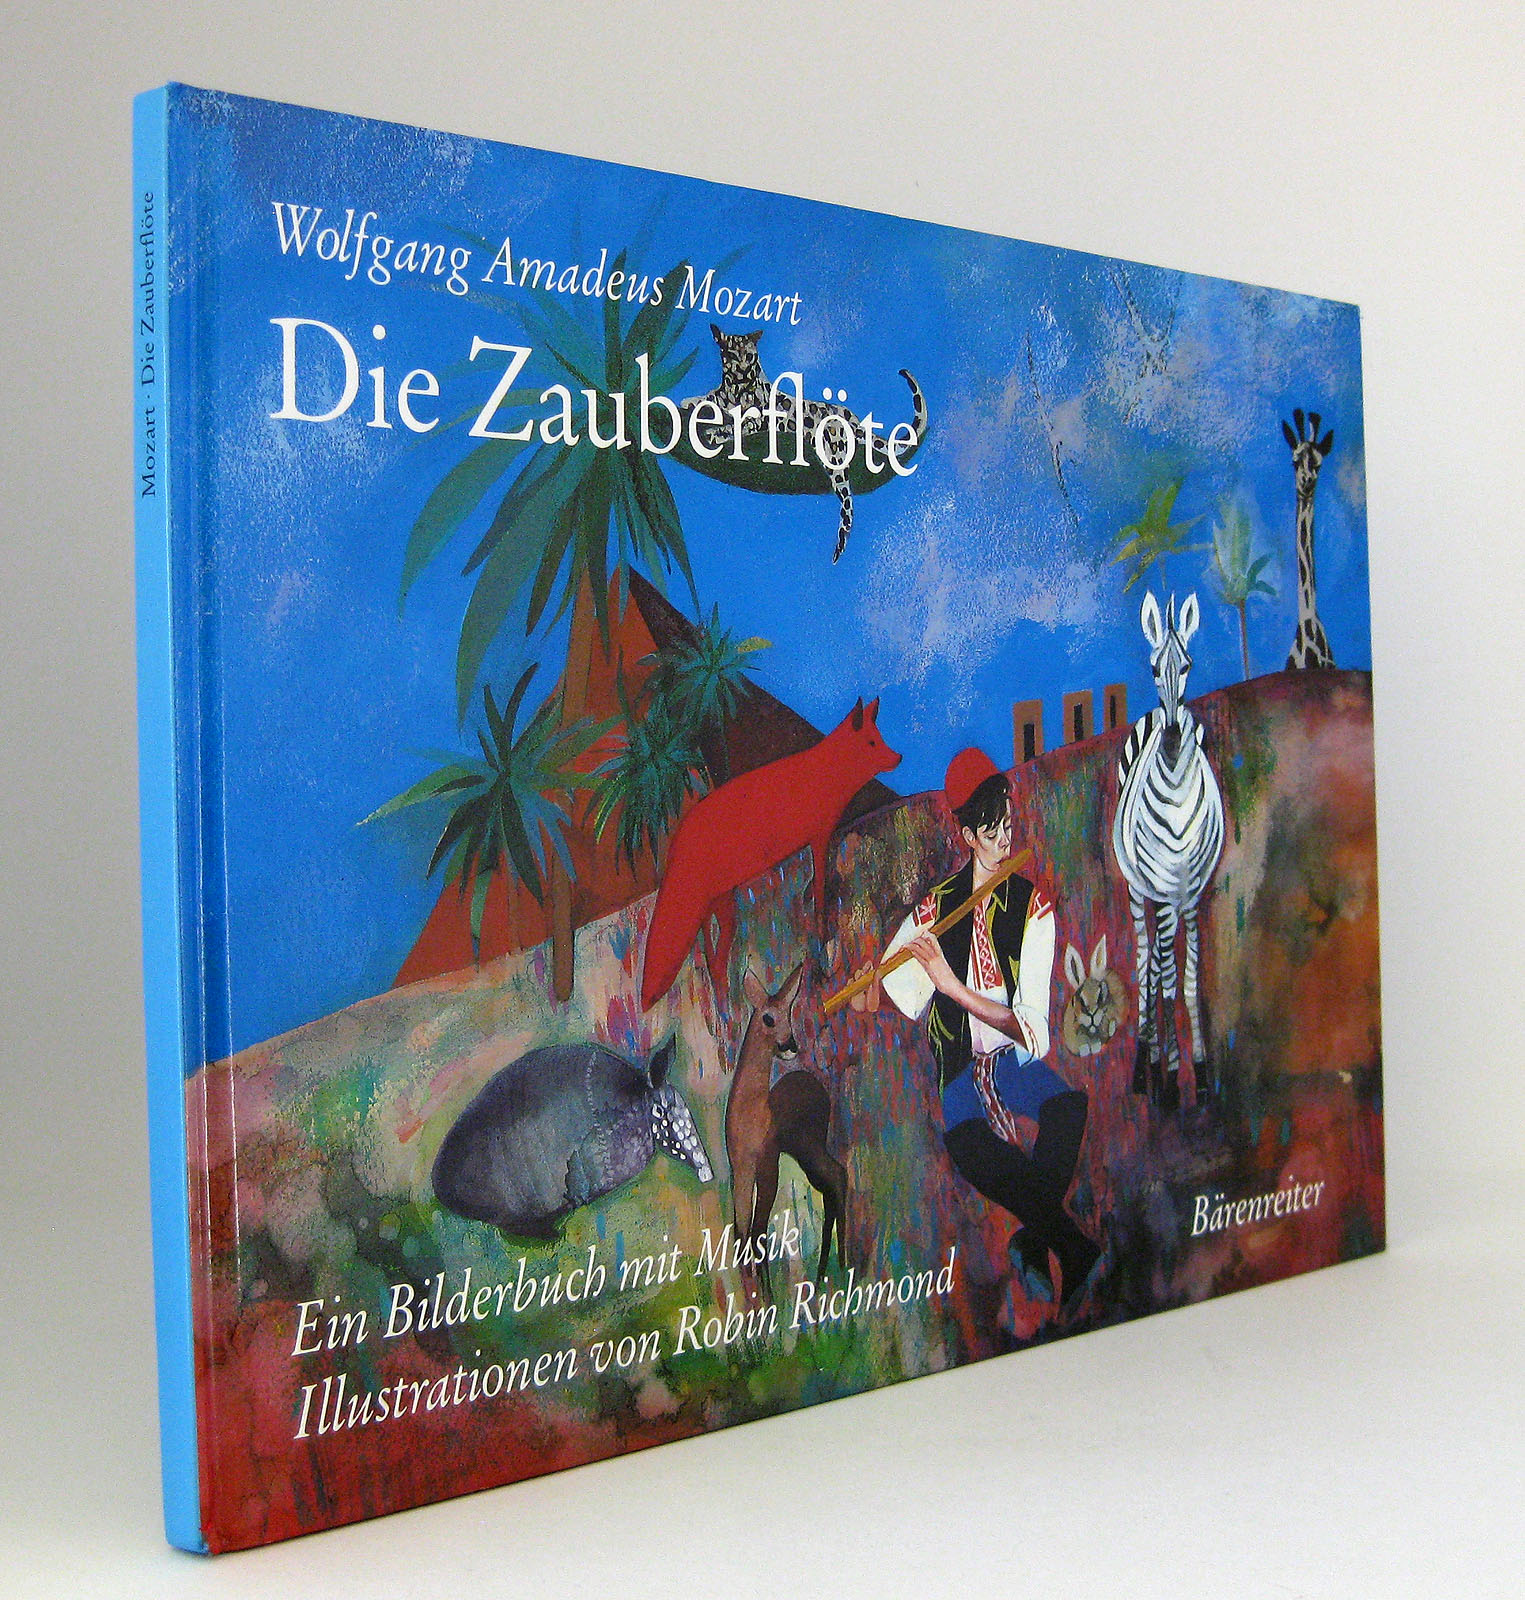 Die Zauberflöte : Die Oper als Bilderbuch mit Musik. Geschichte nach Emanuel Schikaneder von Amanda Holden - Mozart, Wolfgang Amadeus [Musik] Holden, Amanda [Text] Richmond, Robin [Illustrationen]